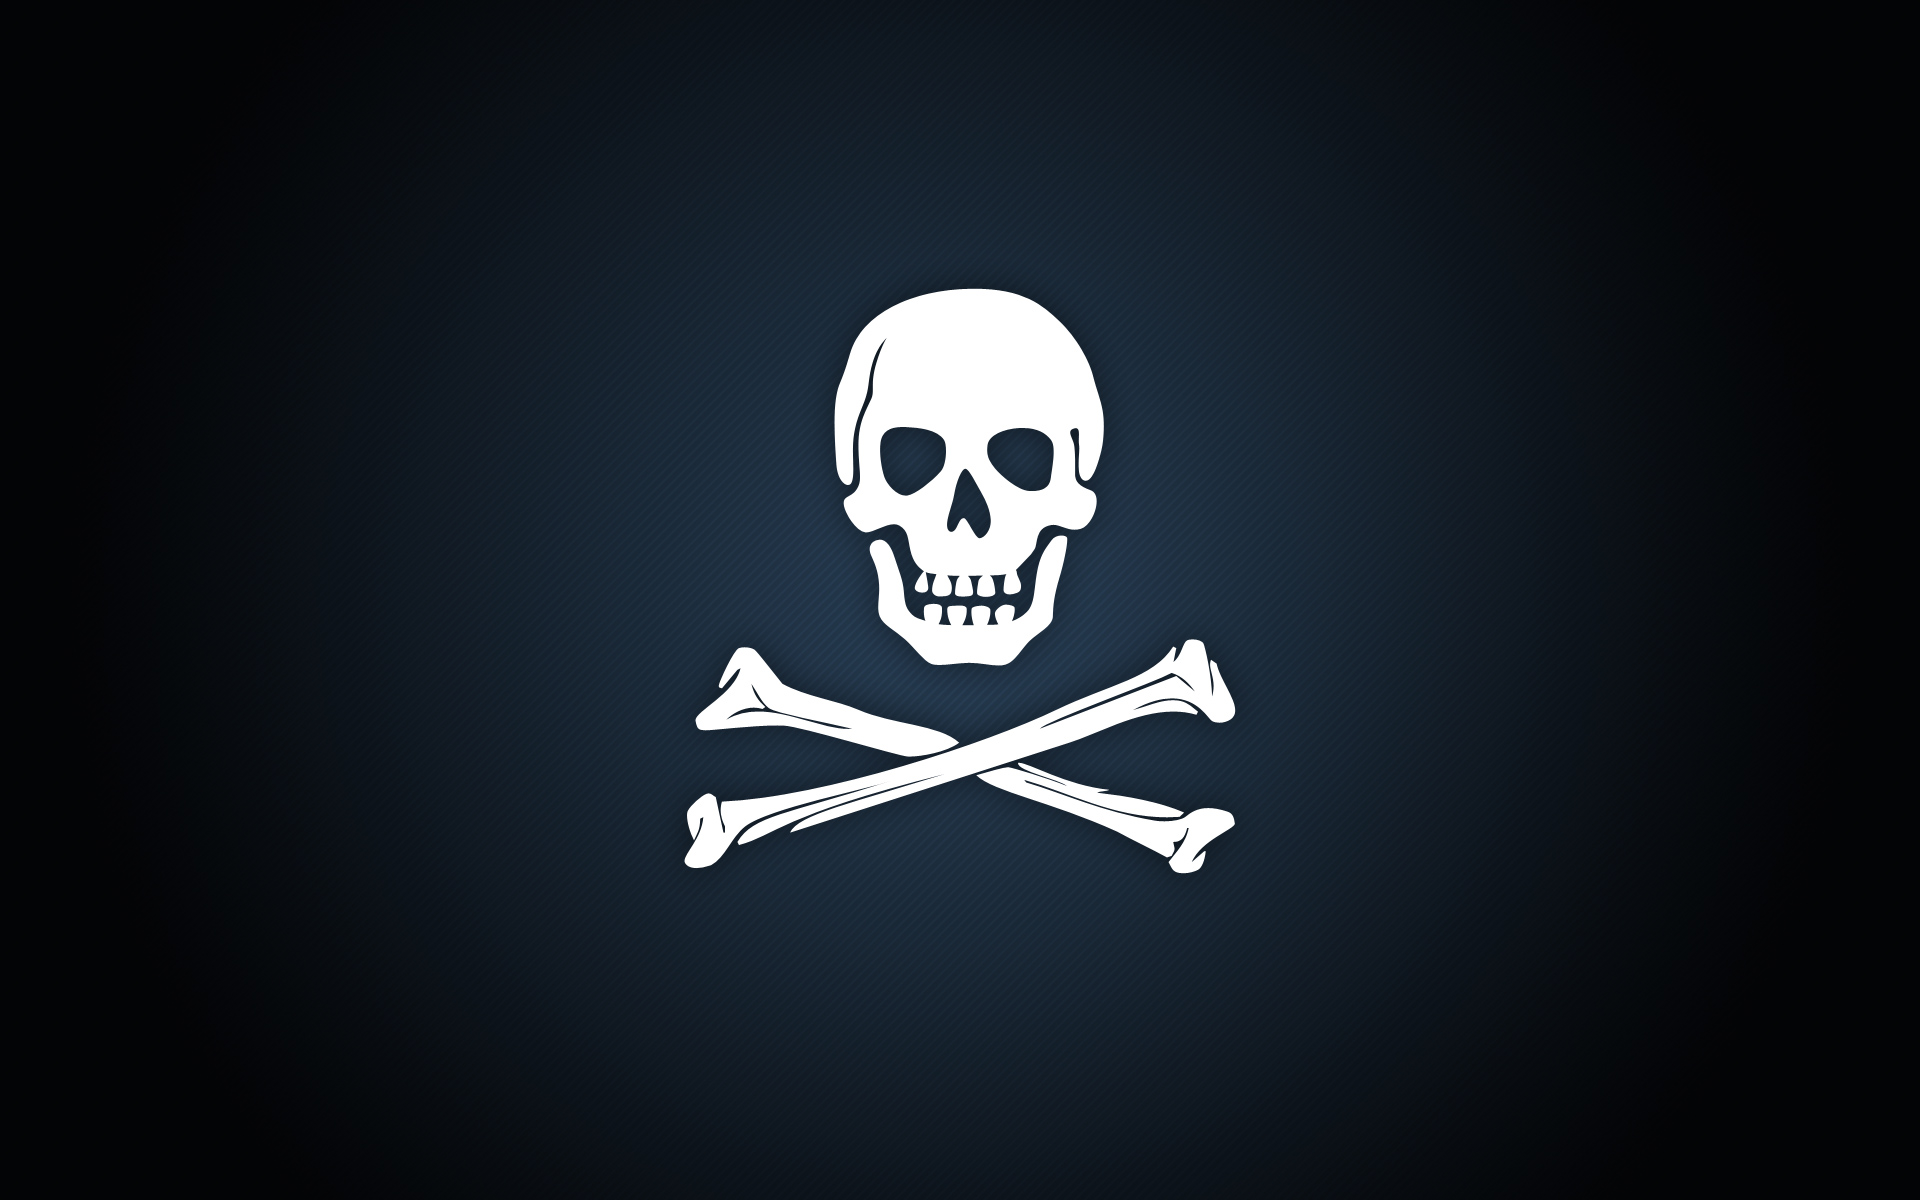 Flag Skull Wallpaper High Quality WallpapersWallpaper DesktopHigh 1920x1200